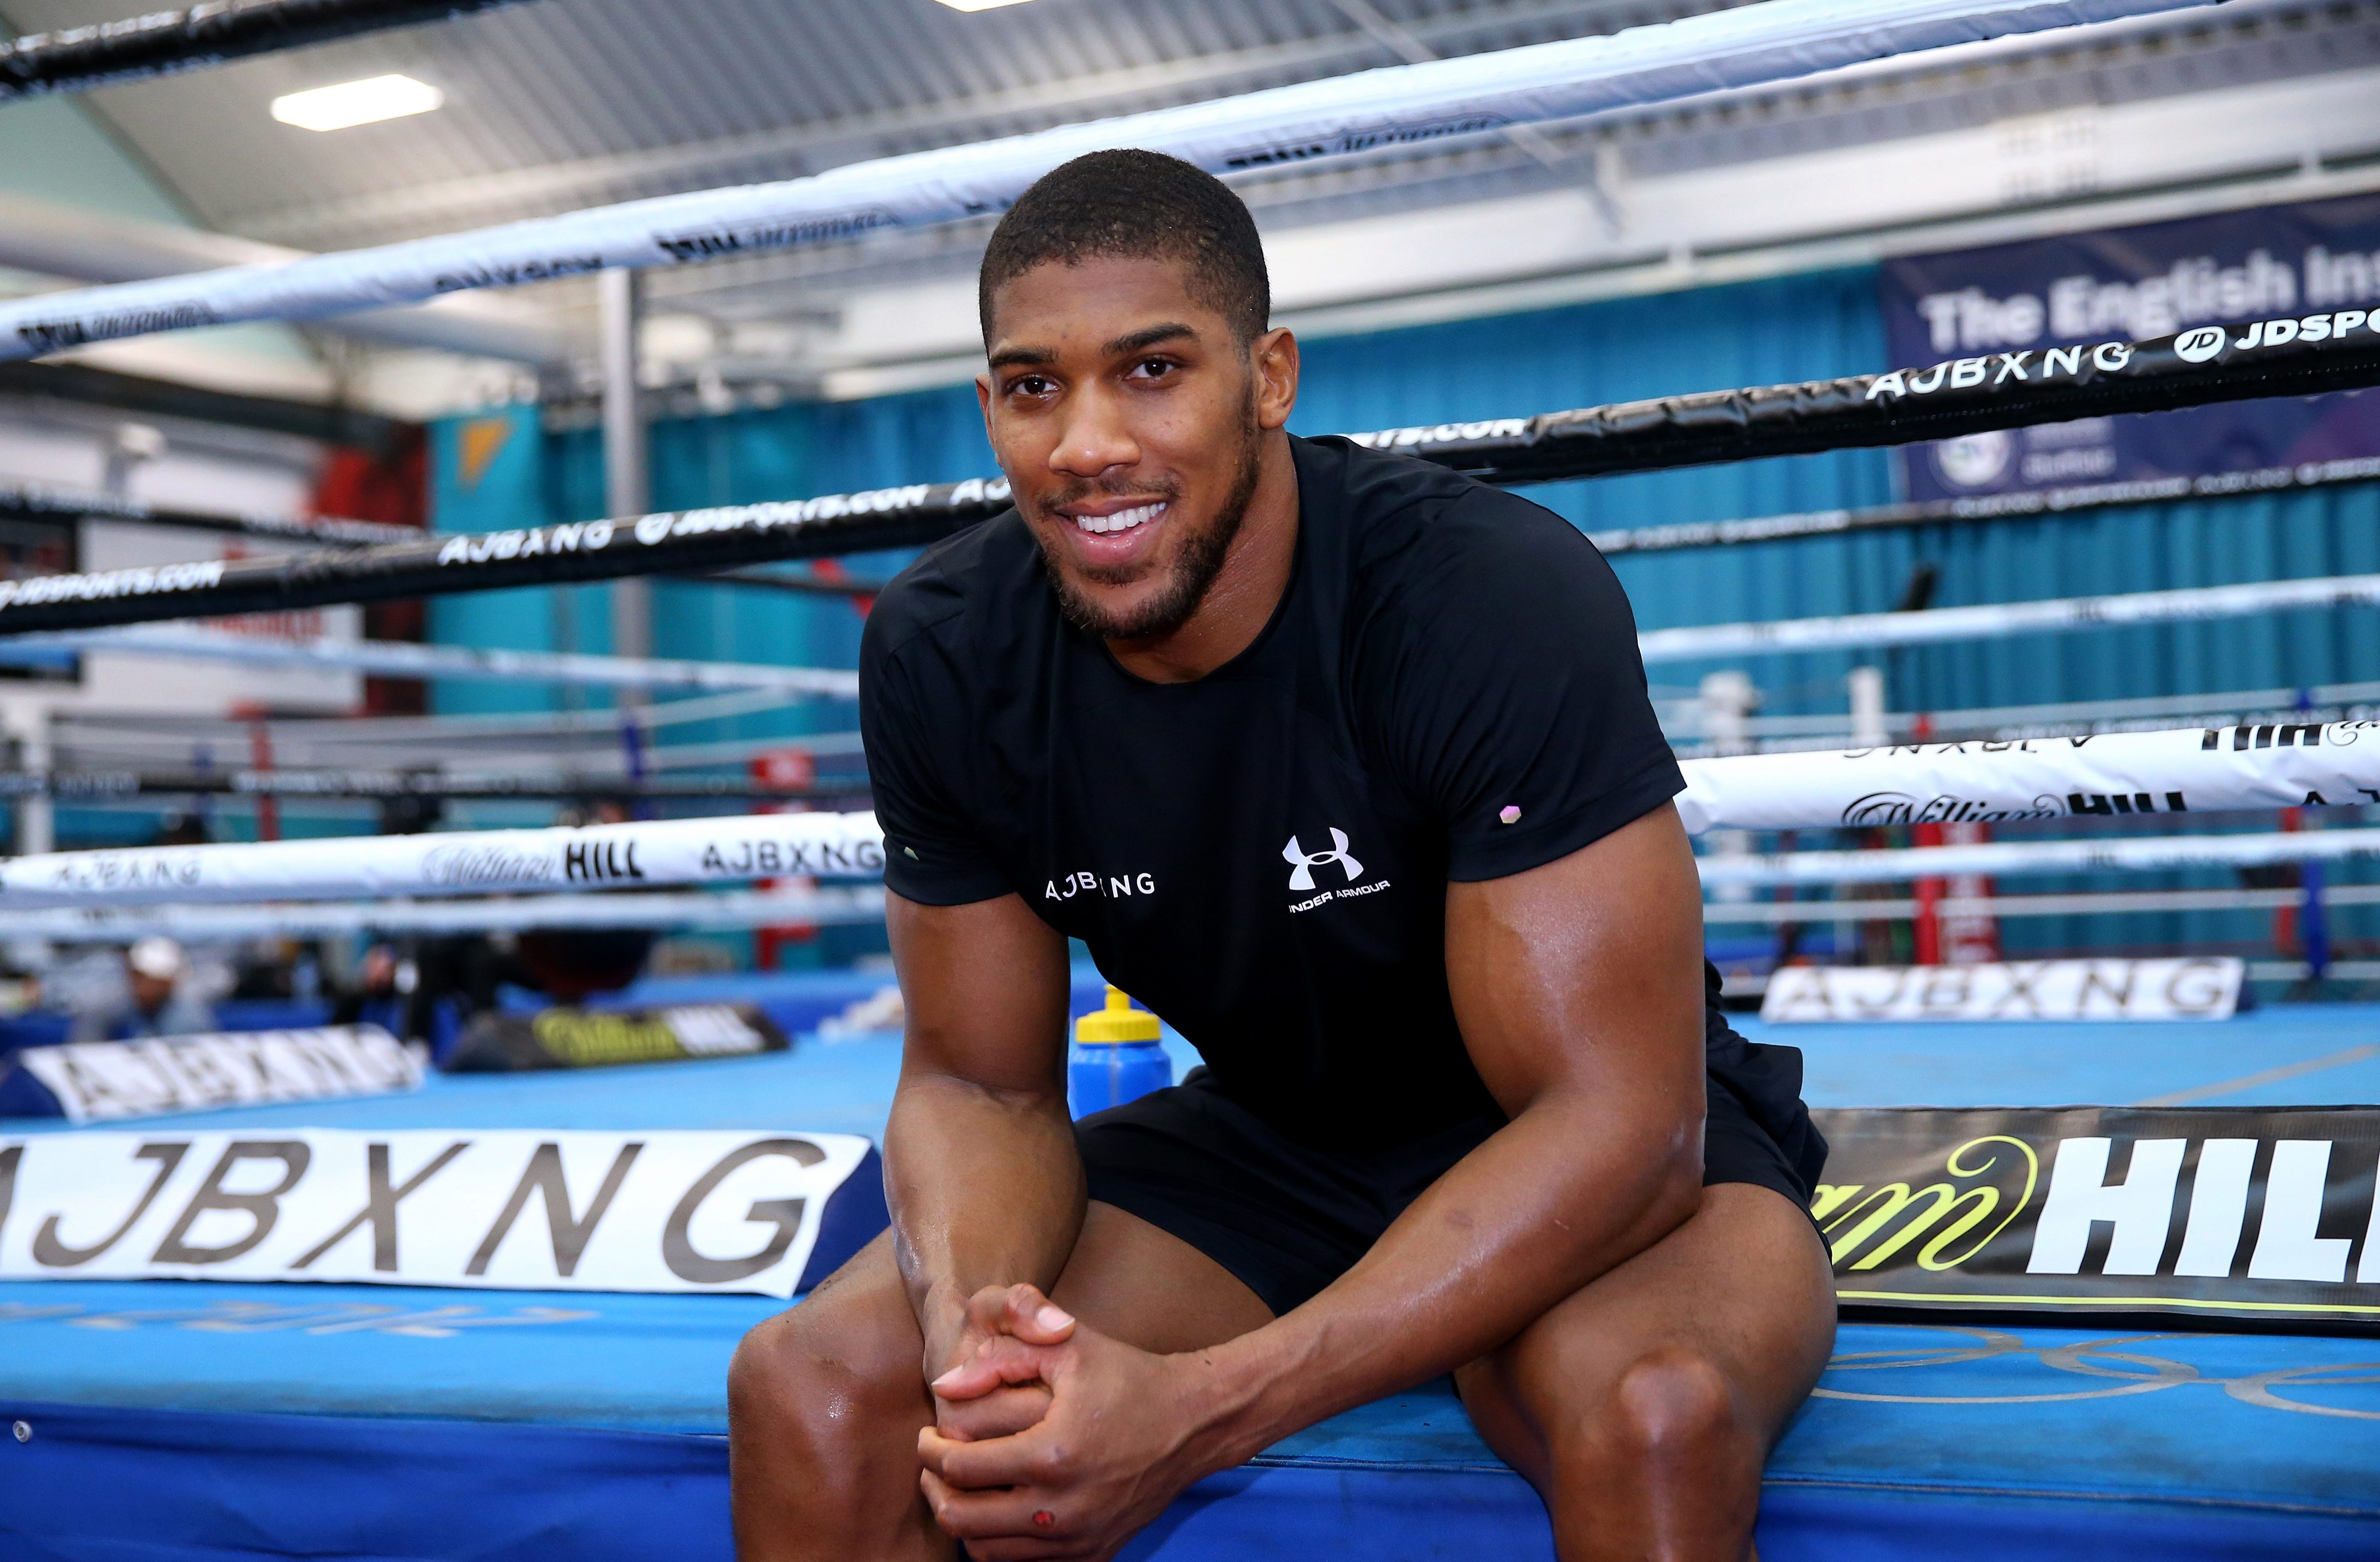 Joshua is aiming to put on a show when he makes his American debut at Madison Square Garden